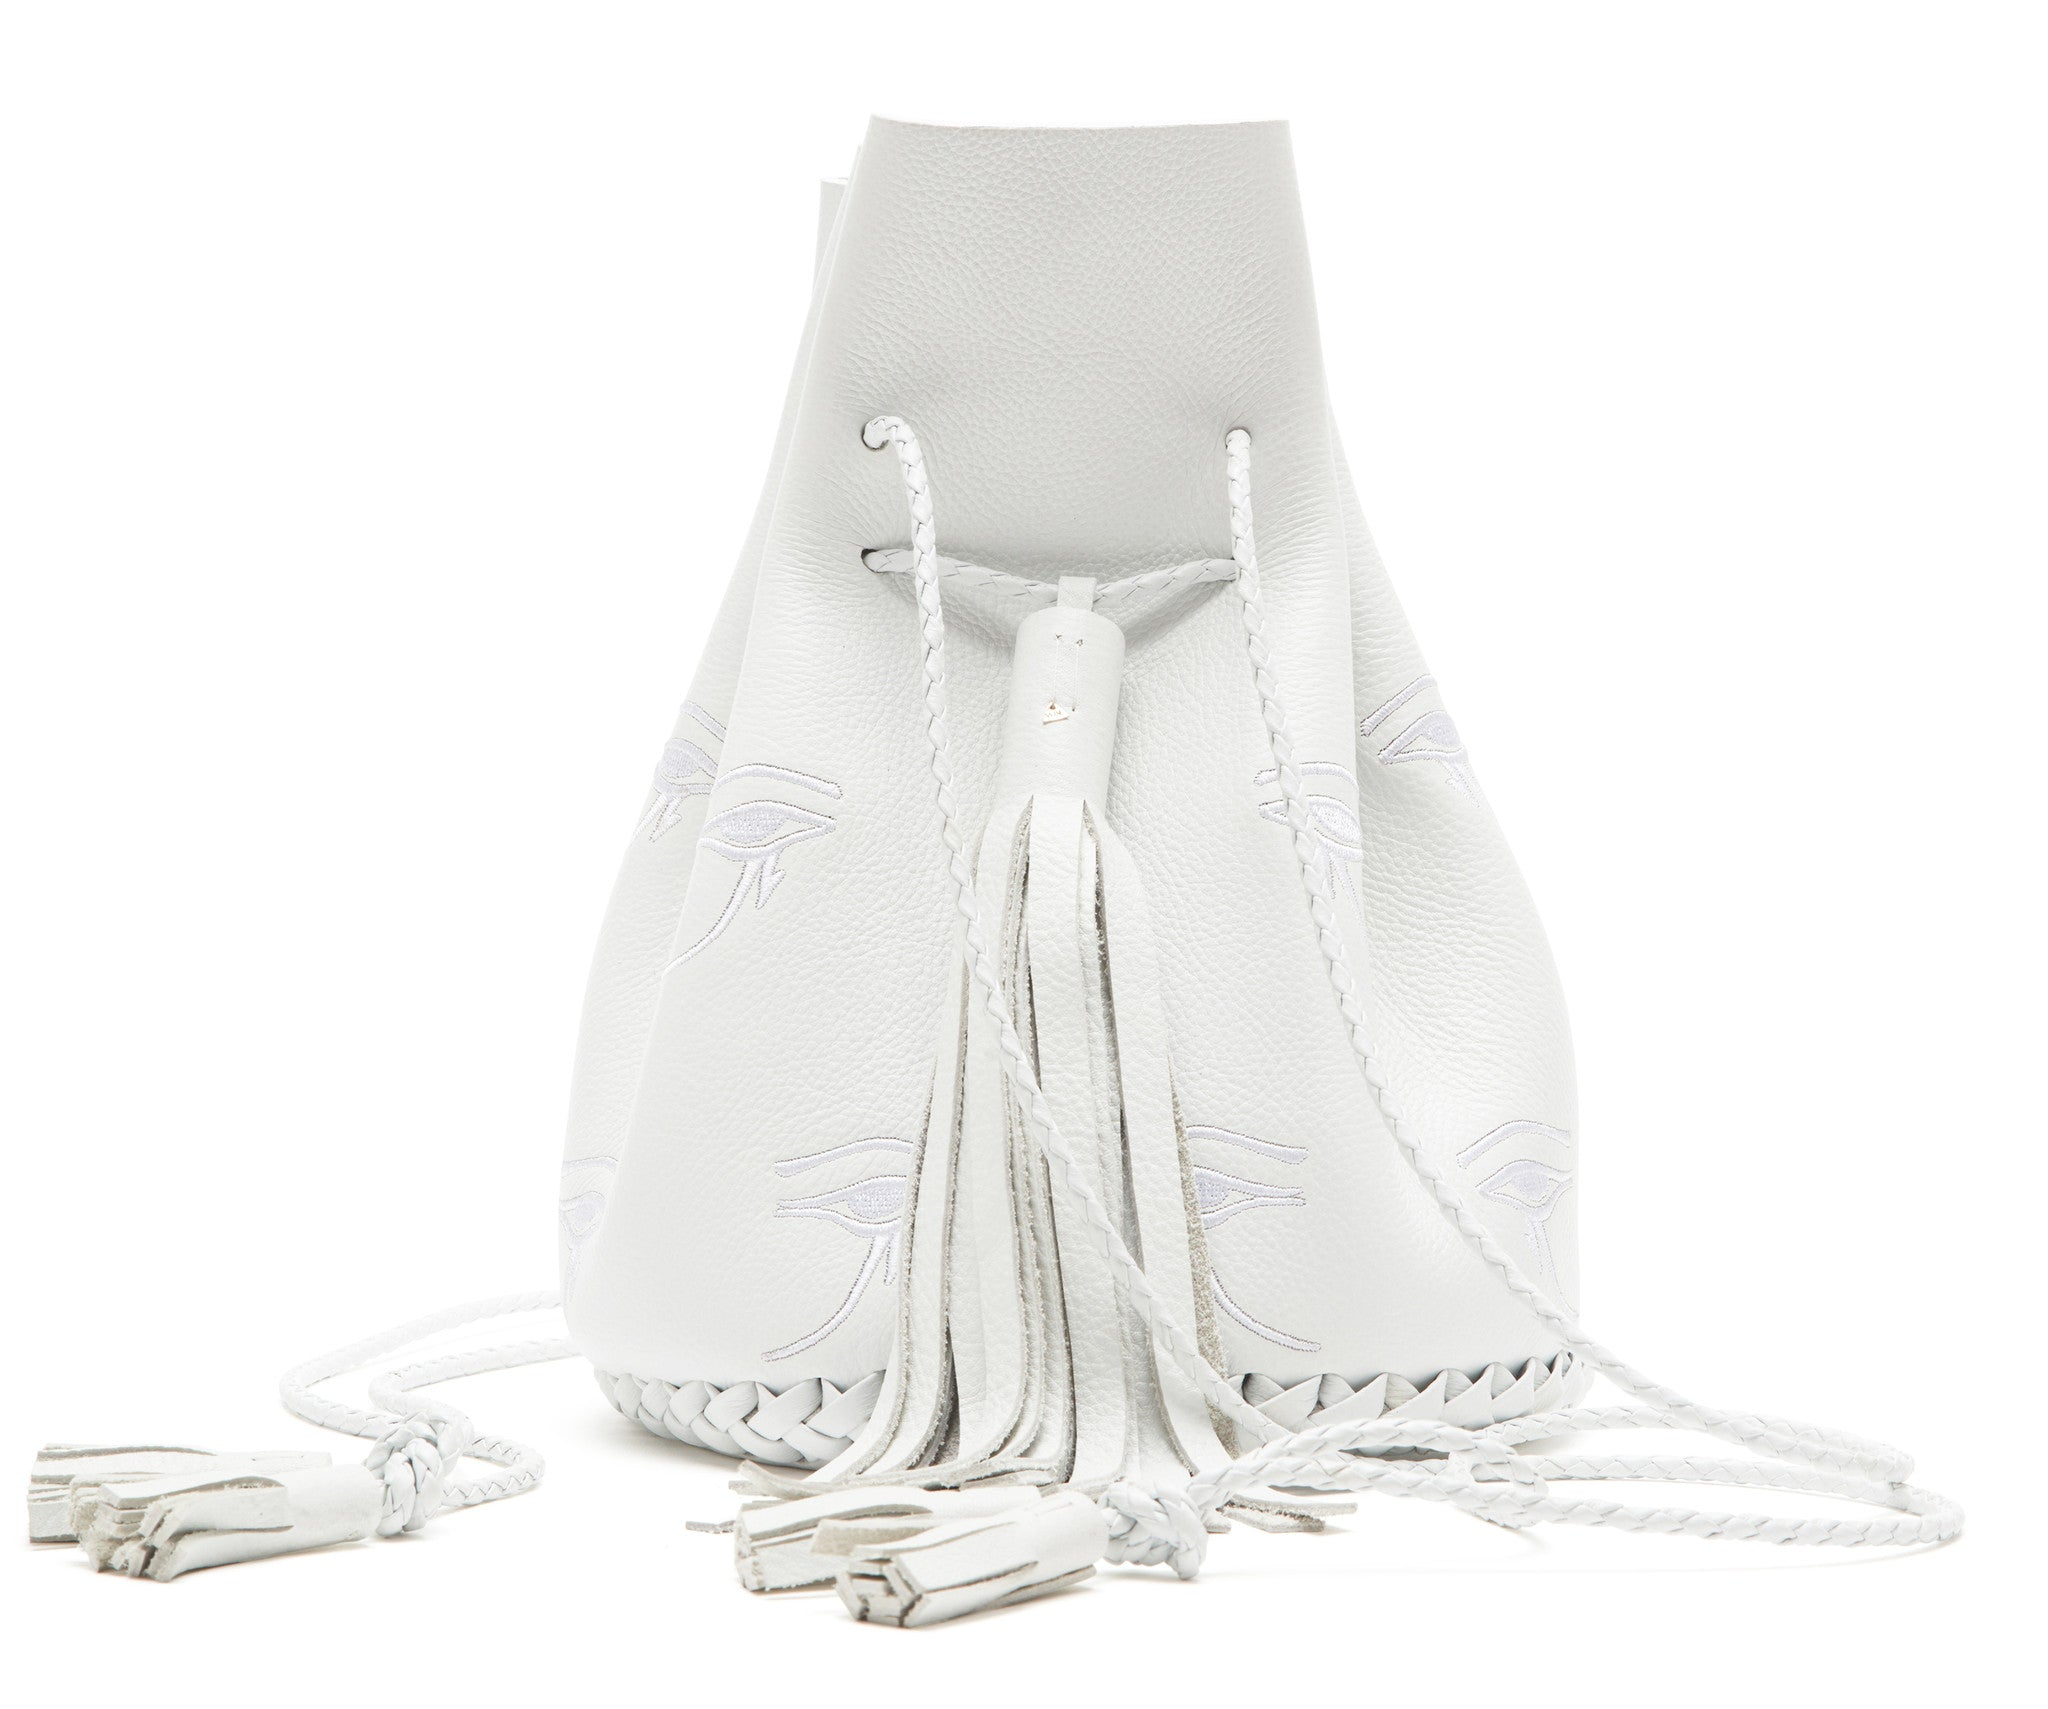 Silver White Embroidered Egyptian Eye of Horus Leather Bullet Bag Wendy Nichol Handbag Purse Designer Handmade in NYC Bucket Bag